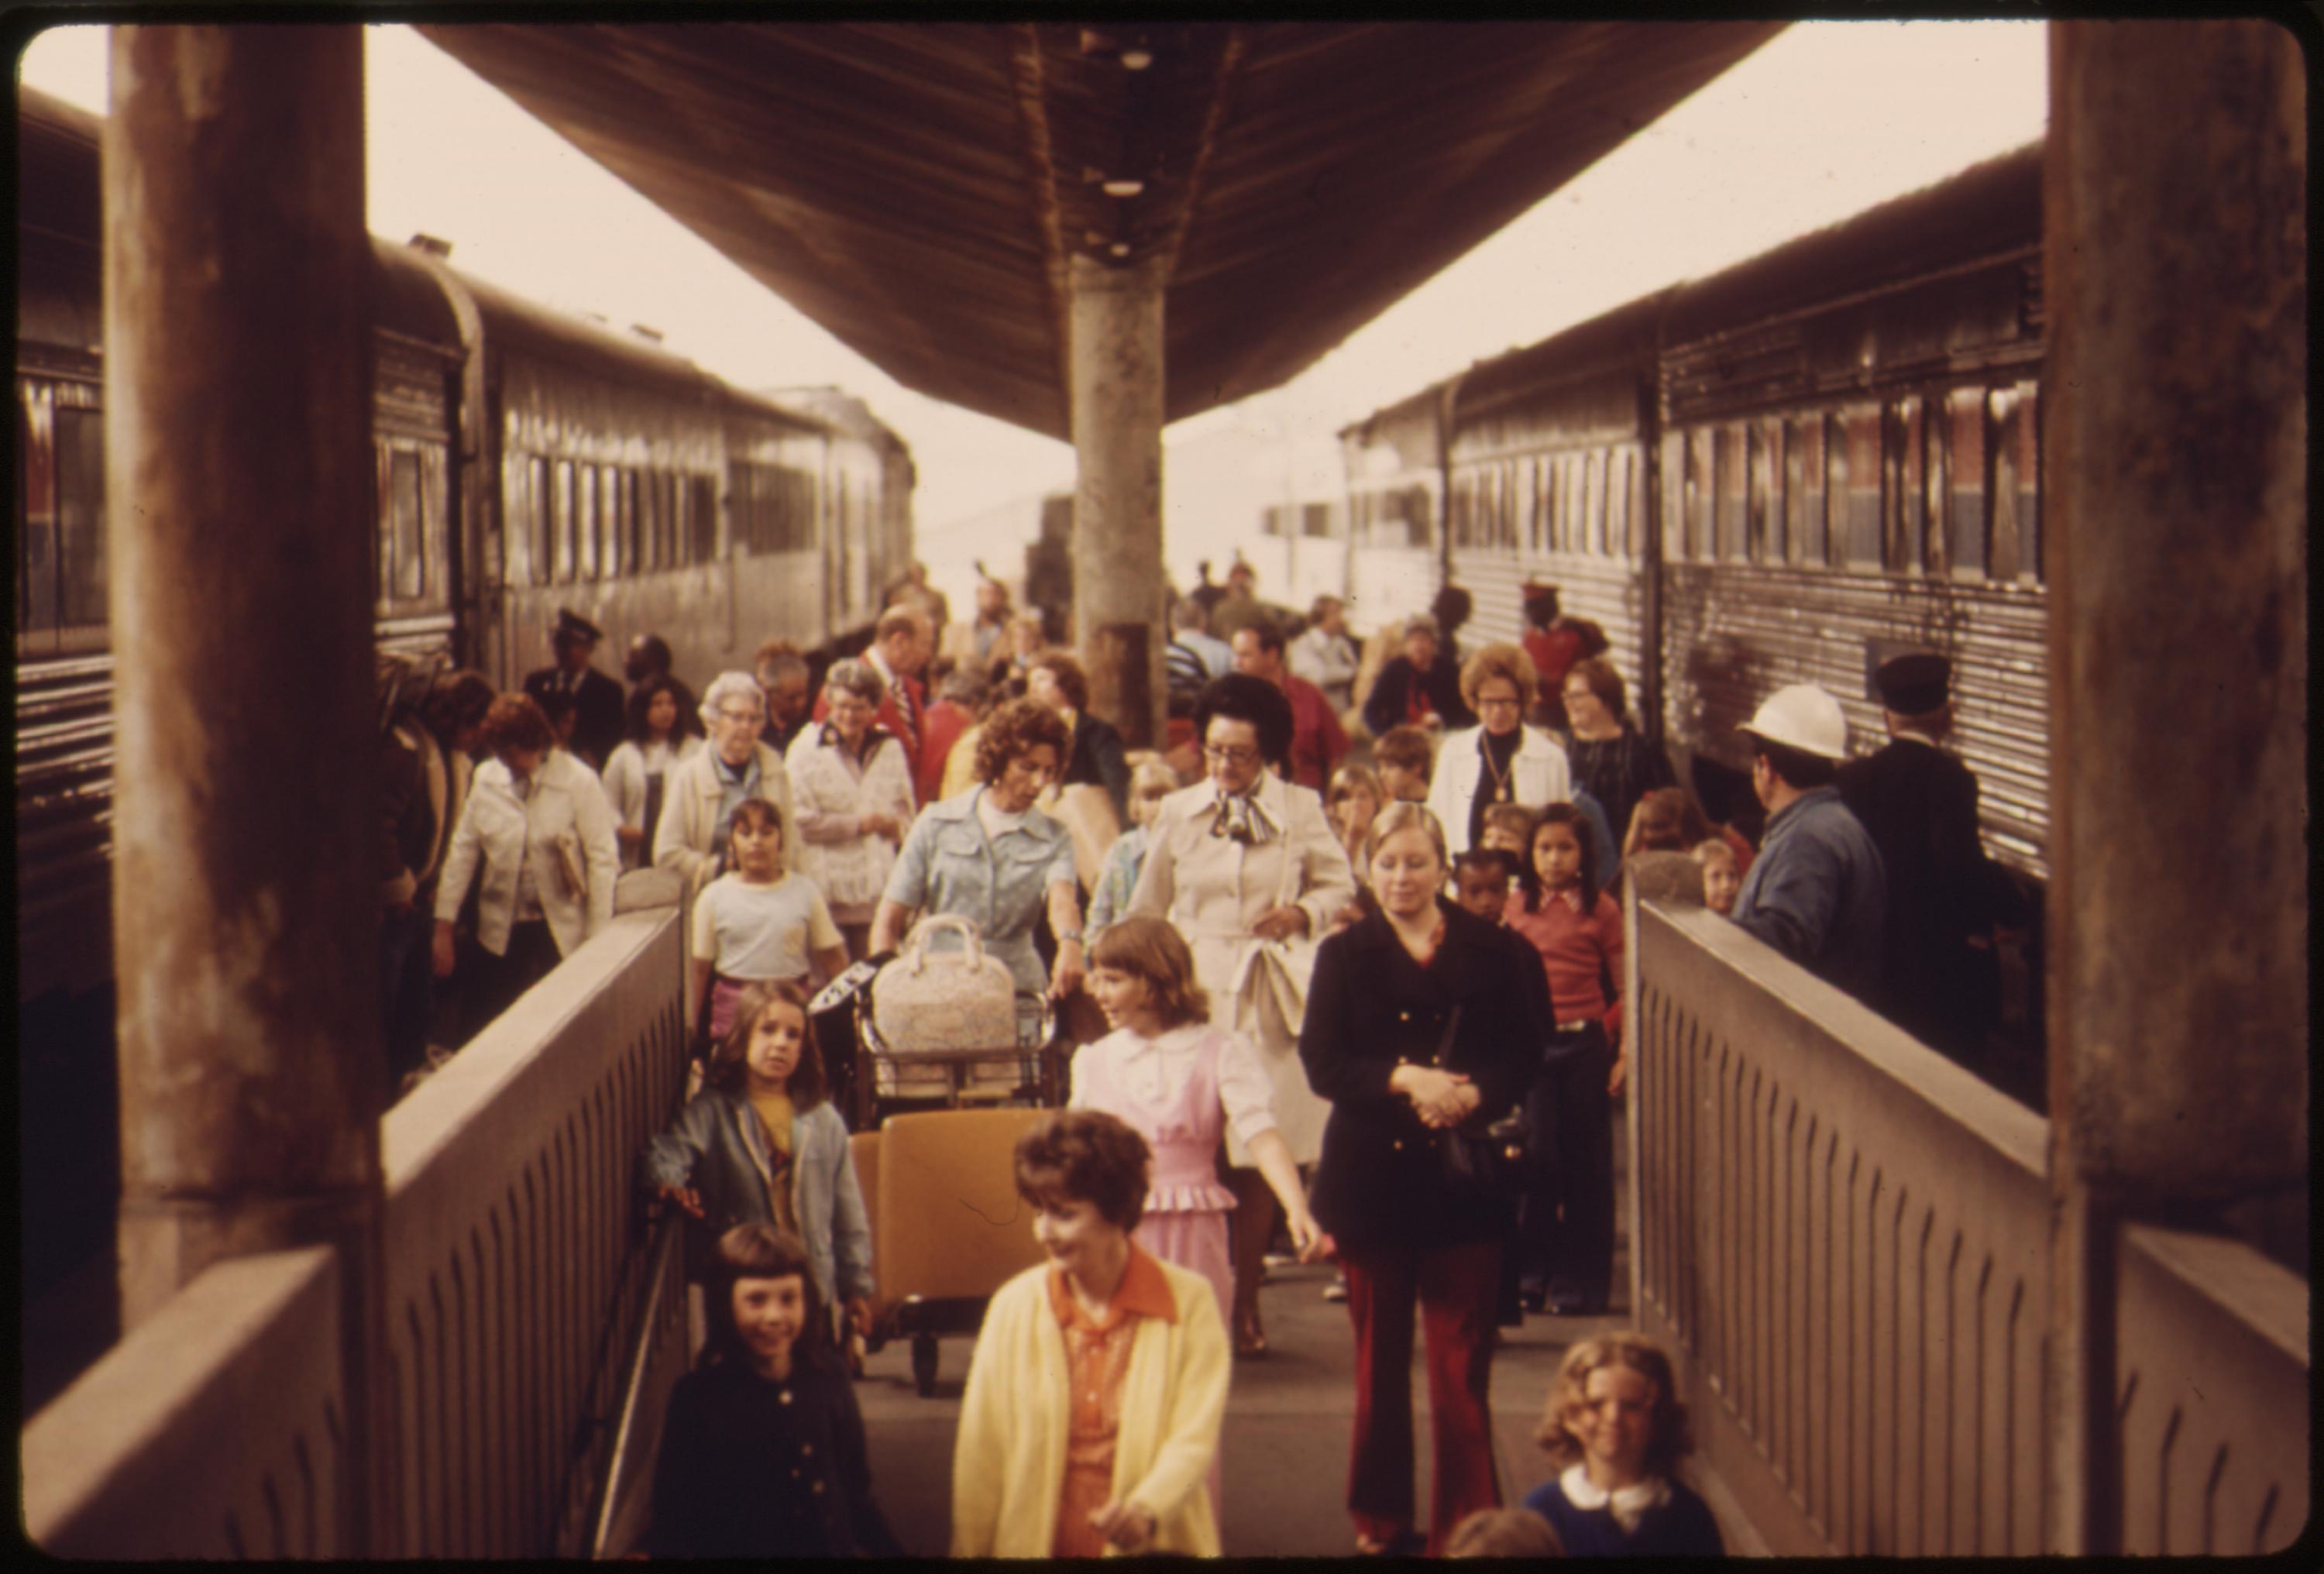 Passengers who have just arrived head into the Los Angeles Union Passenger Terminal after riding on Amtrak trains, May 1974